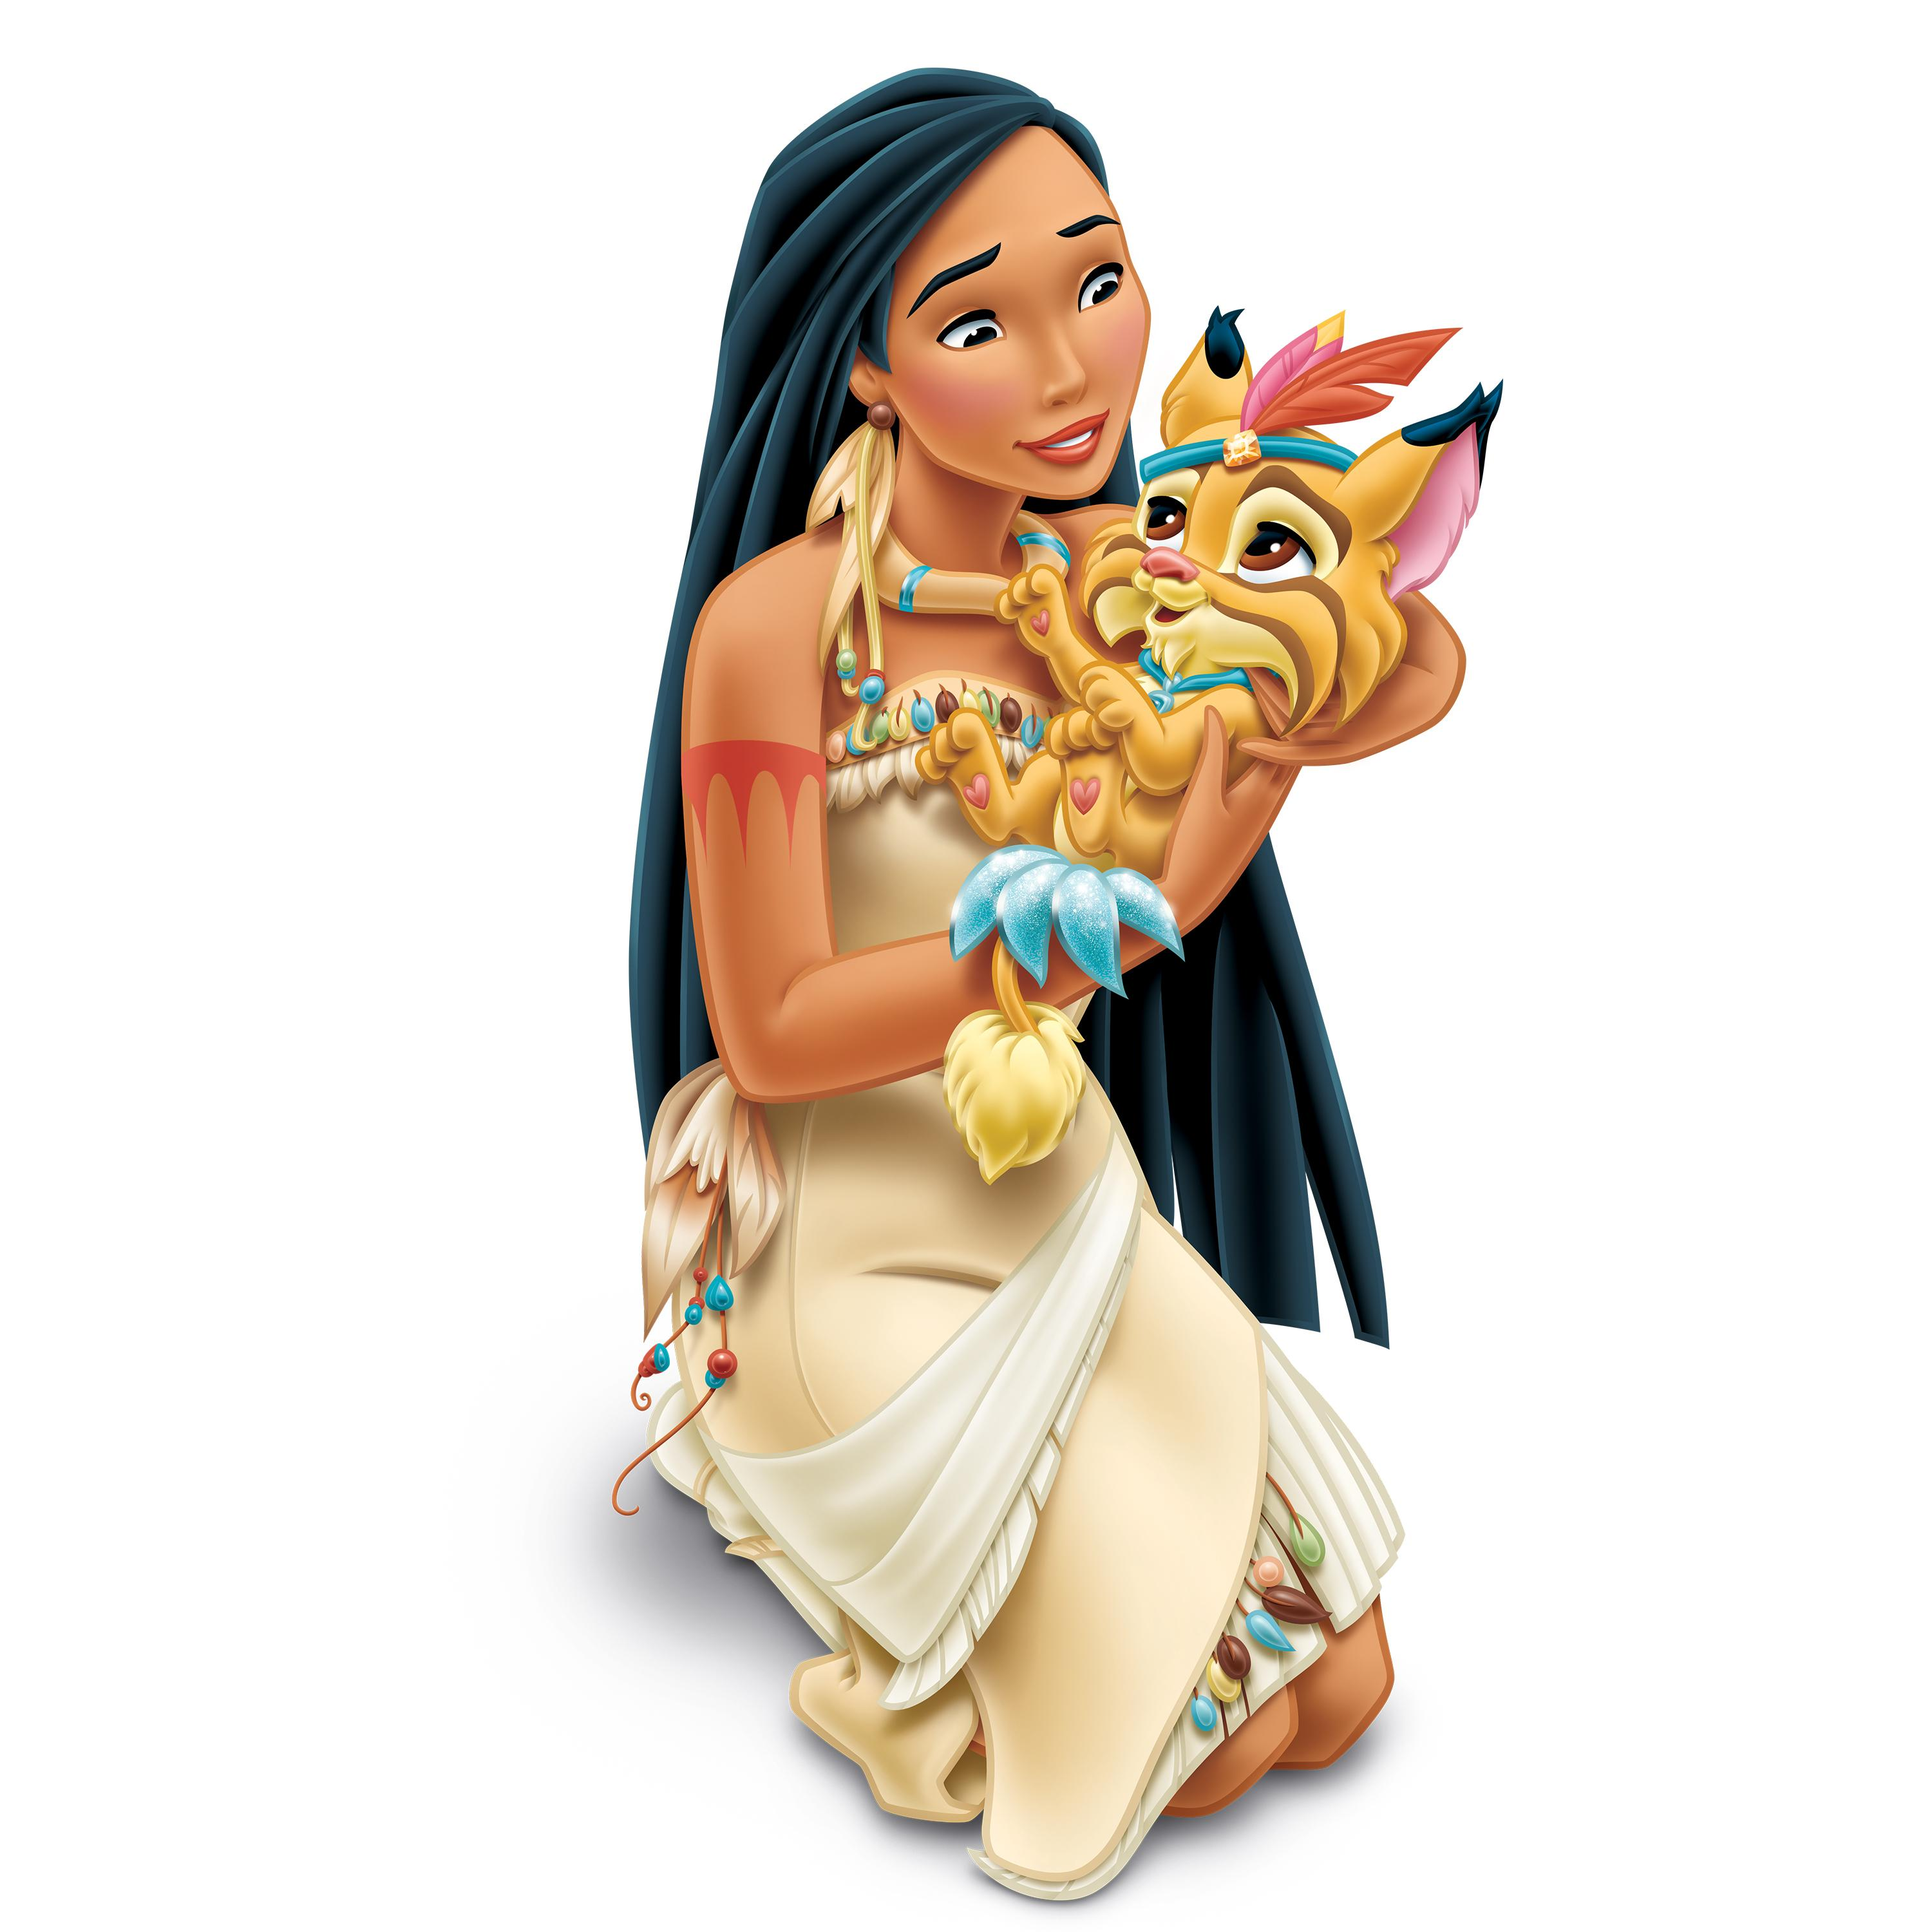 on a nice autumn day pocahontas had just come back from the forest but